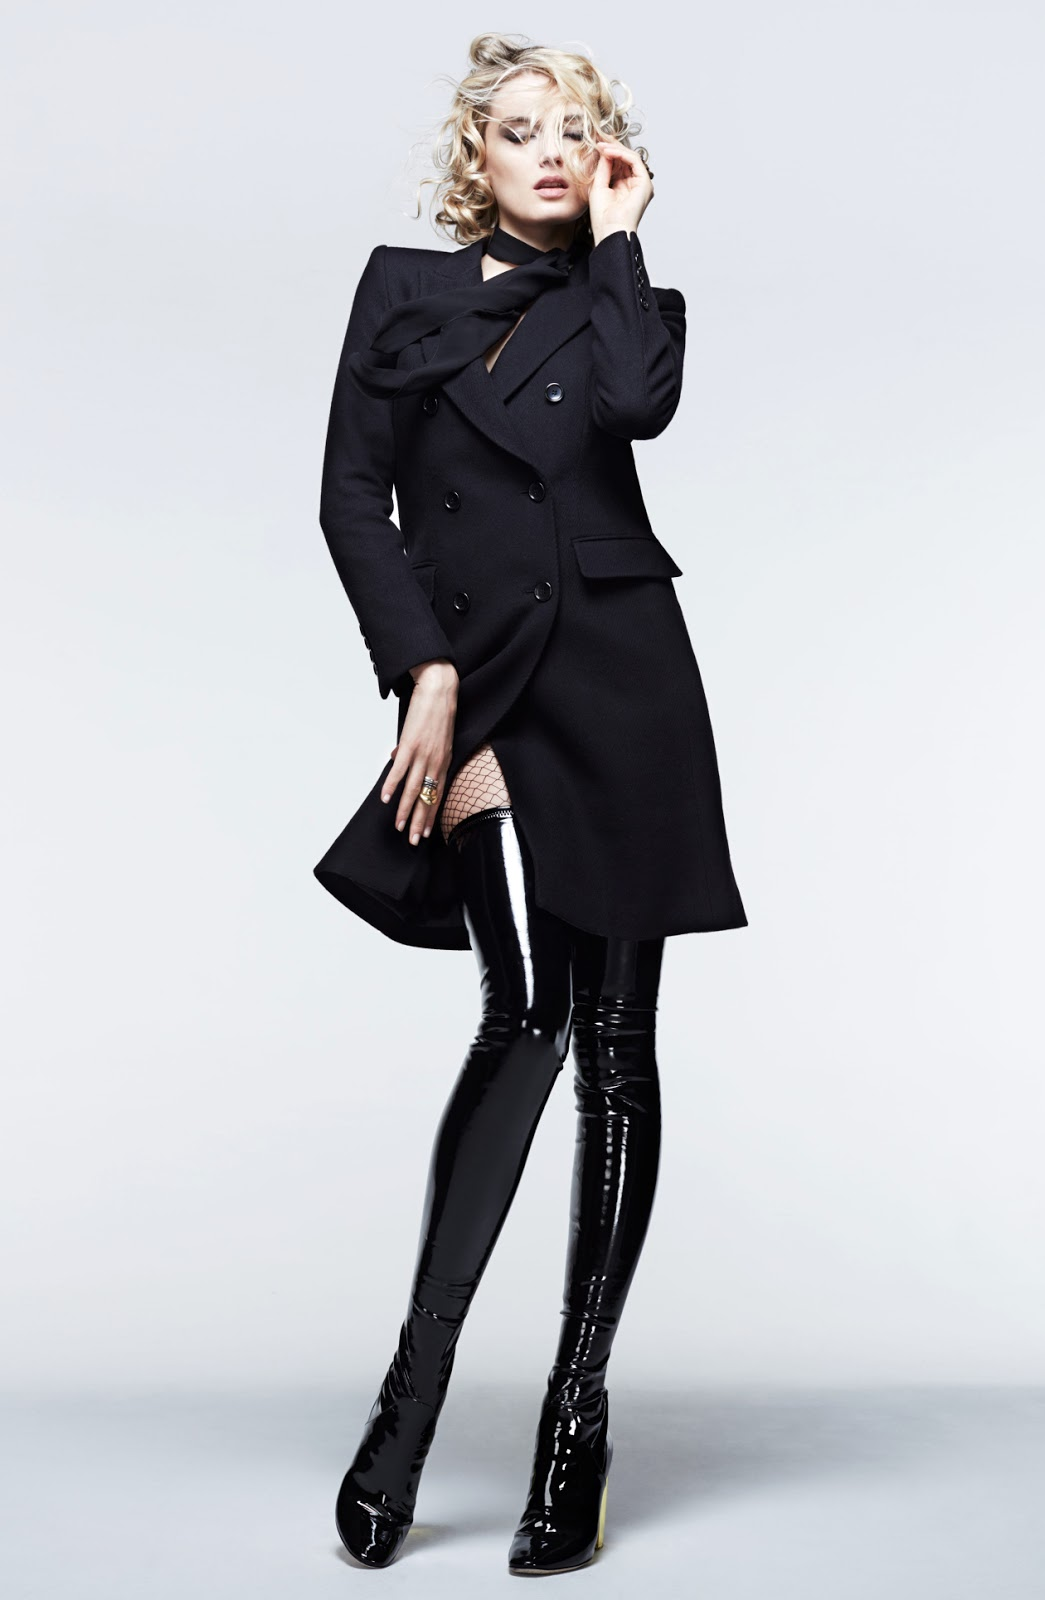 Carine Roitfeld x Uniqlo collaboration collection pieces via fashionedbylove.co.uk british fashion blog